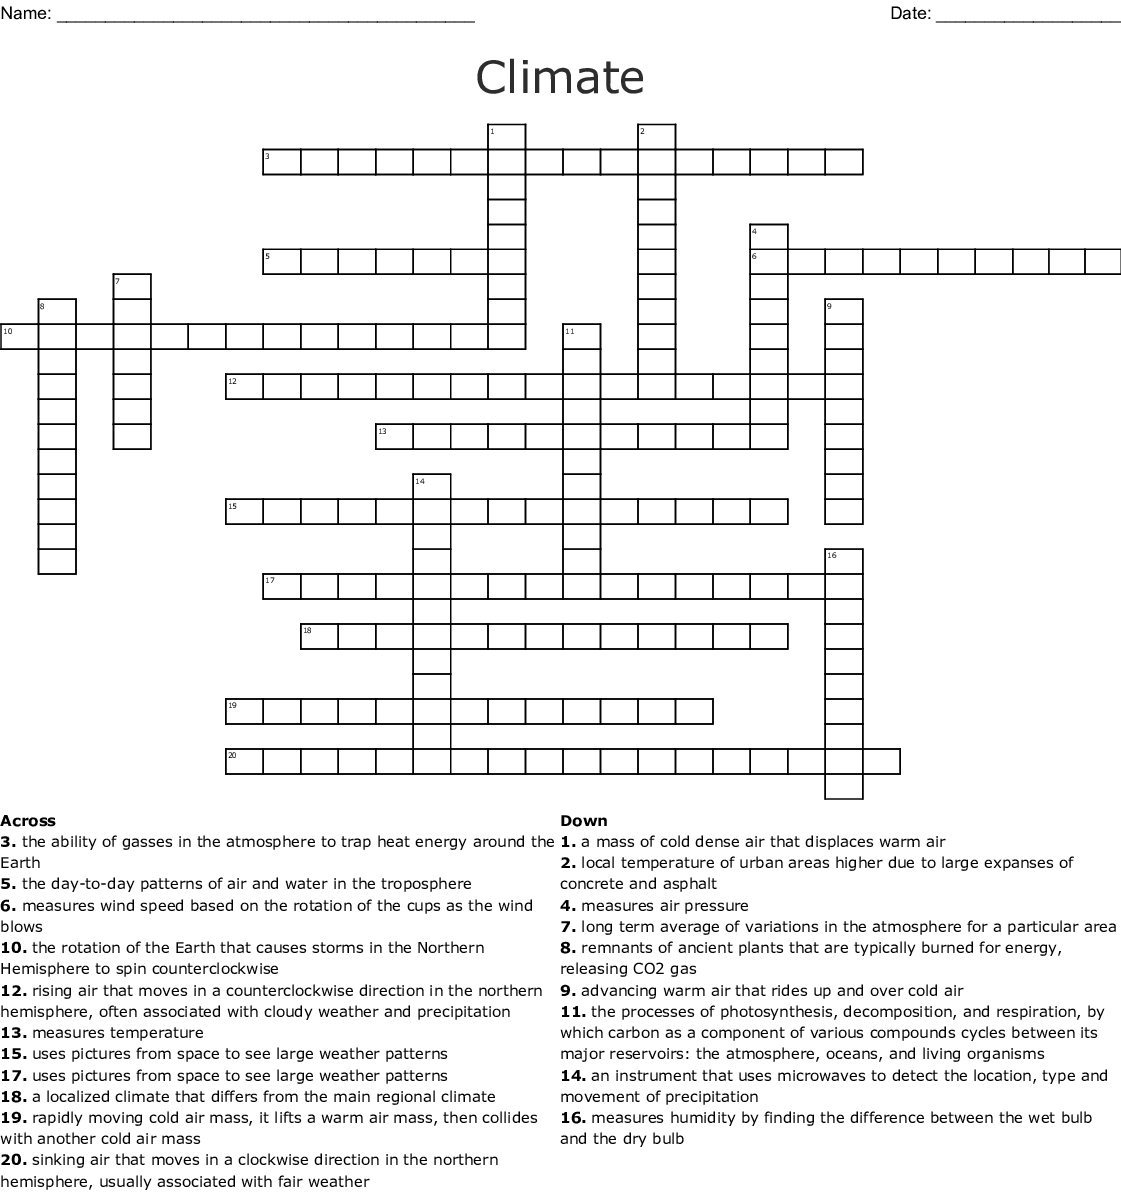 Climate Crossword